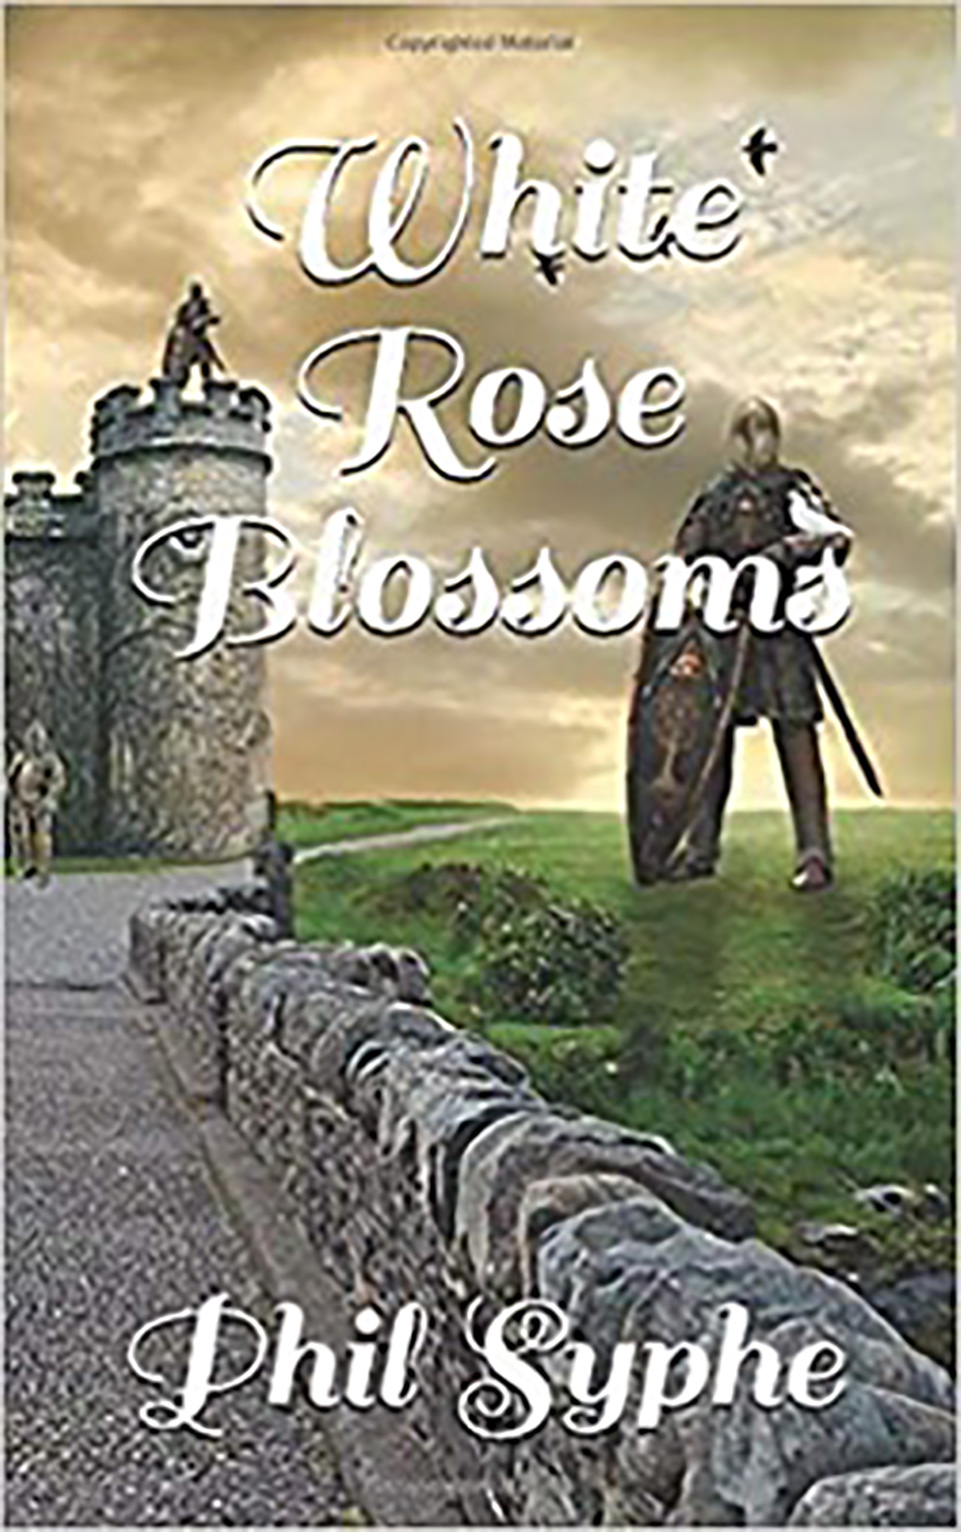 Front cover of a book: White Rose Blossoms by Phil Syphe